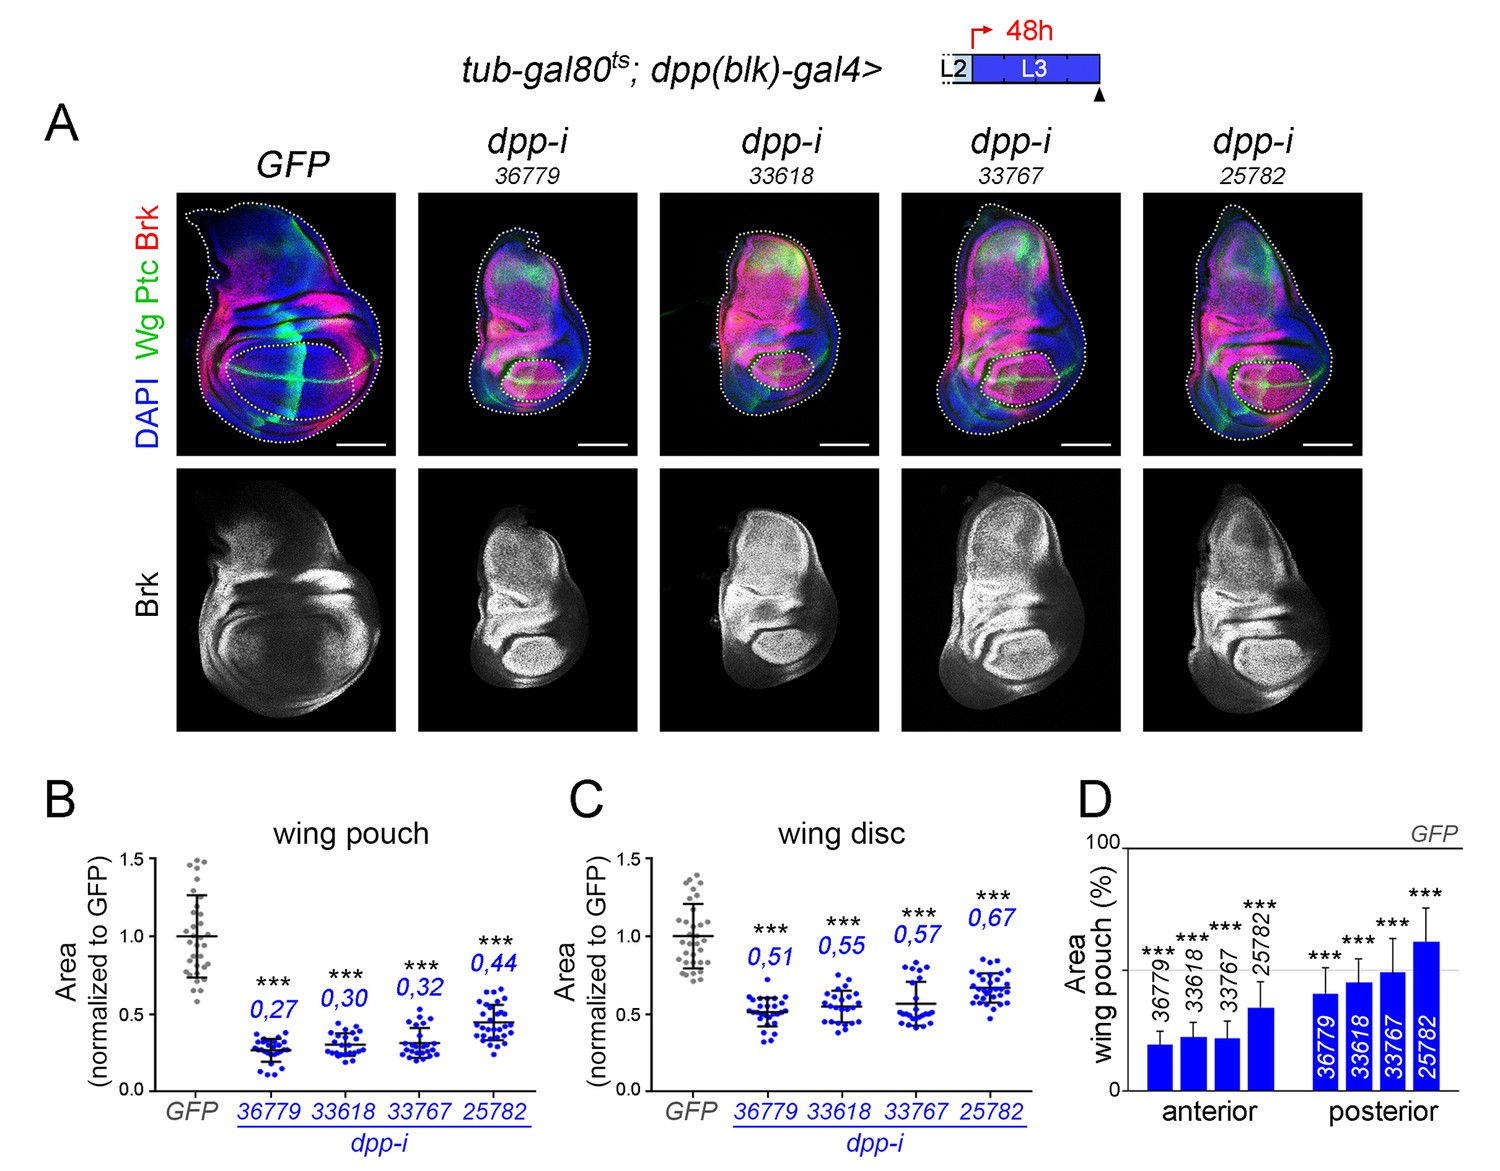 Boundary Dpp promotes growth of medial and lateral regions of the